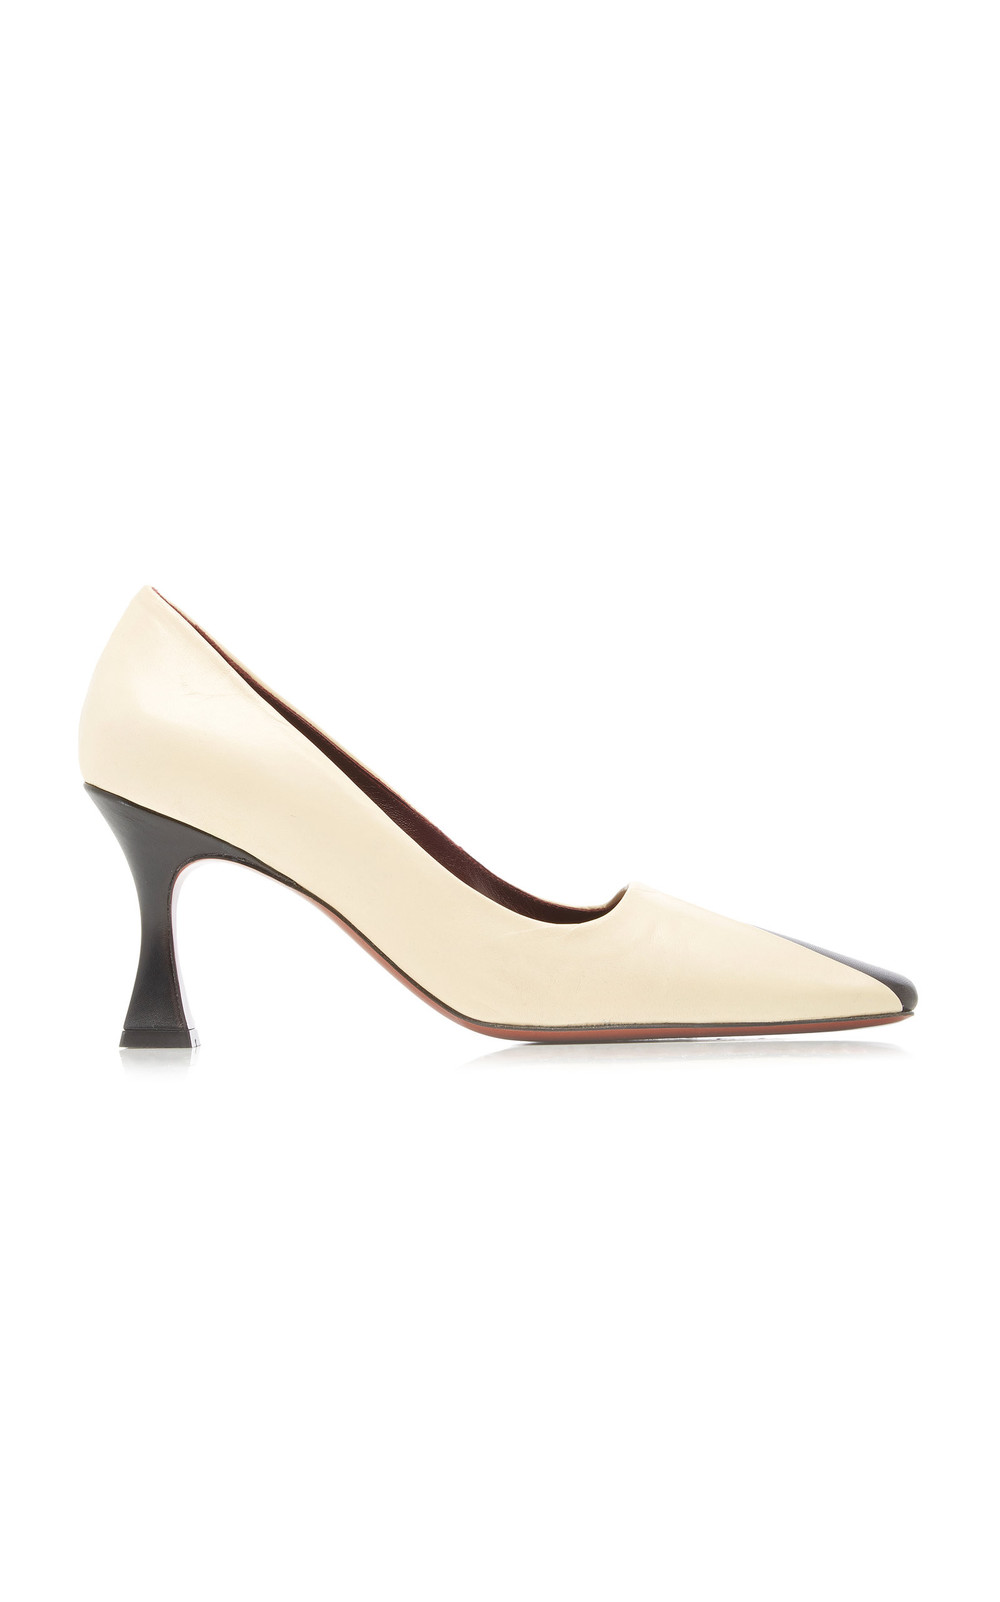 Manu Atelier Duck Two-Tone Leather Pumps Size: 37 in black